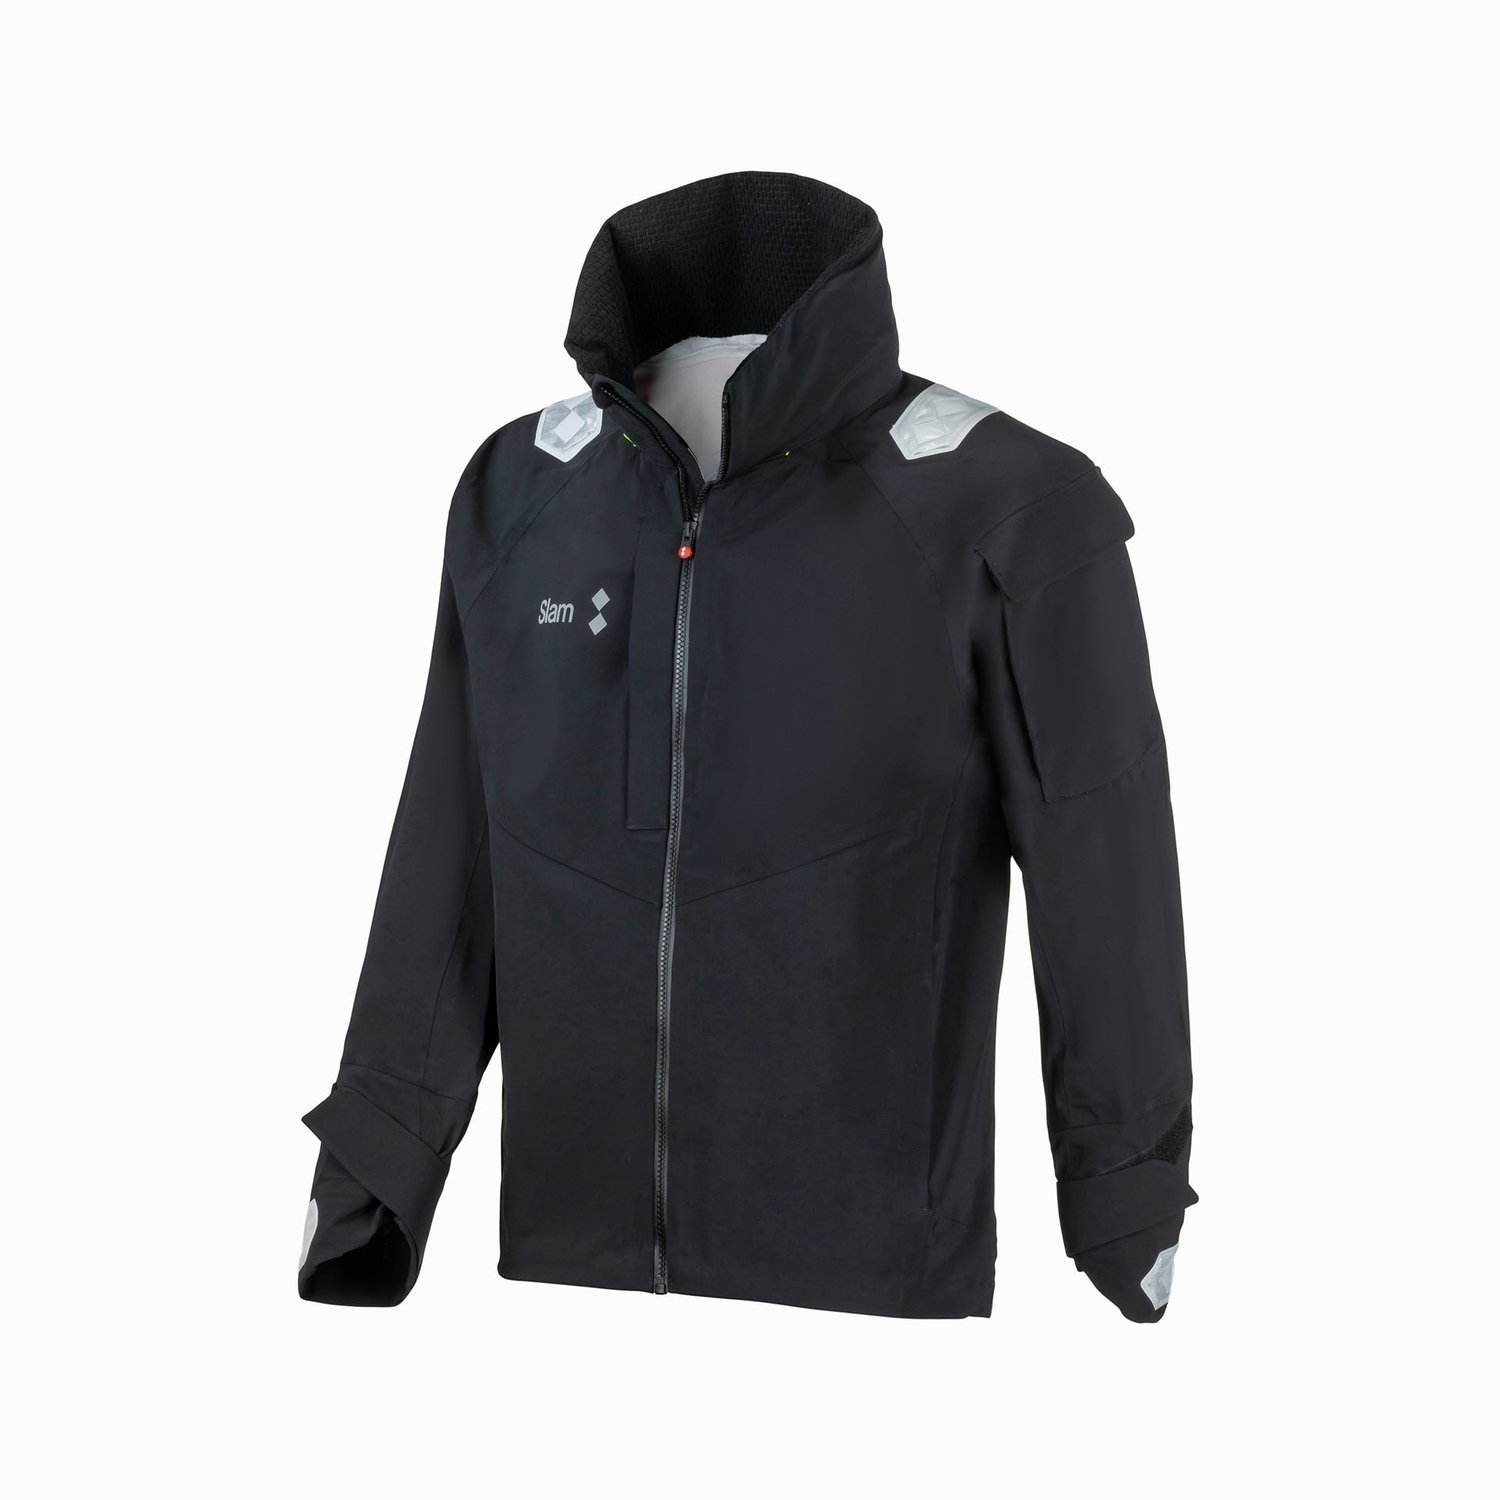 Win-D Racing jacket - Black